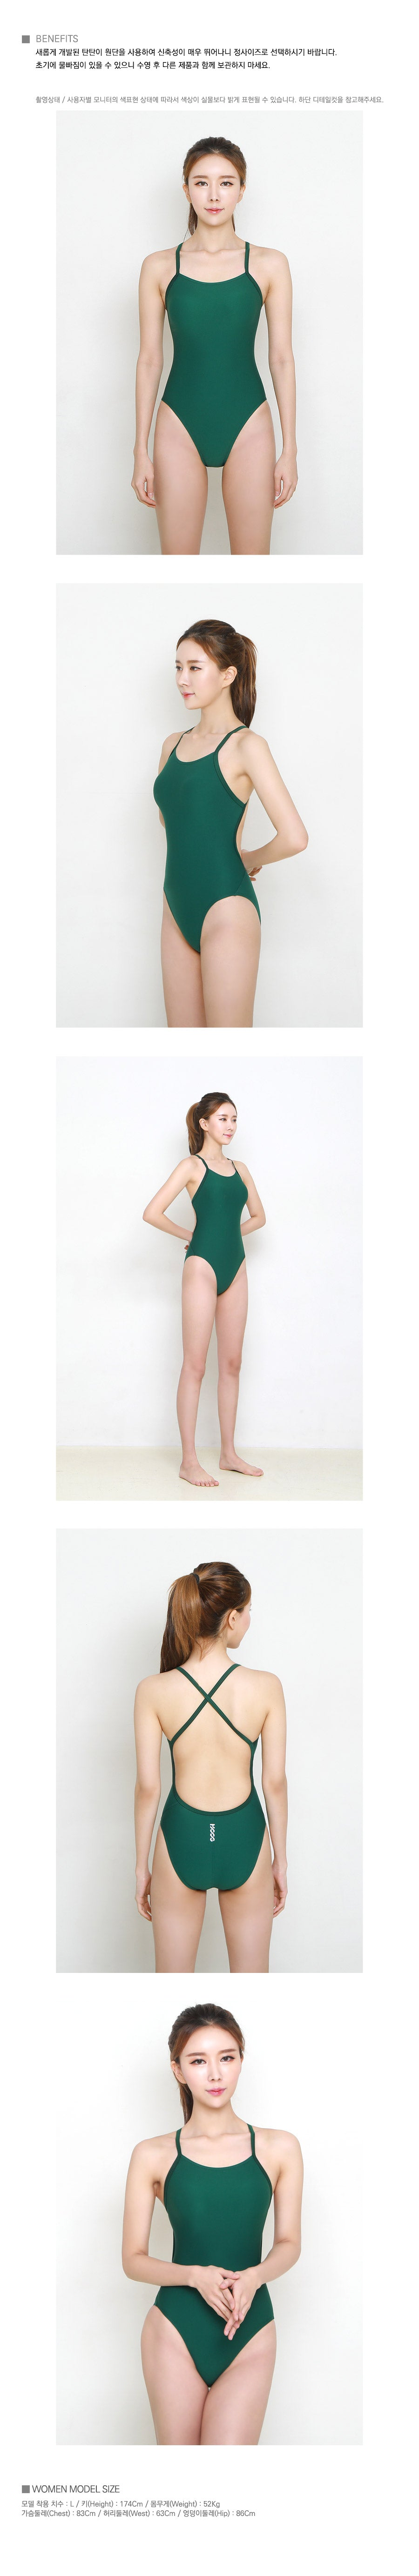 Check out our mermaid swimsuit selection for the very best in unique or custom, handmade pieces from our clothing shops.